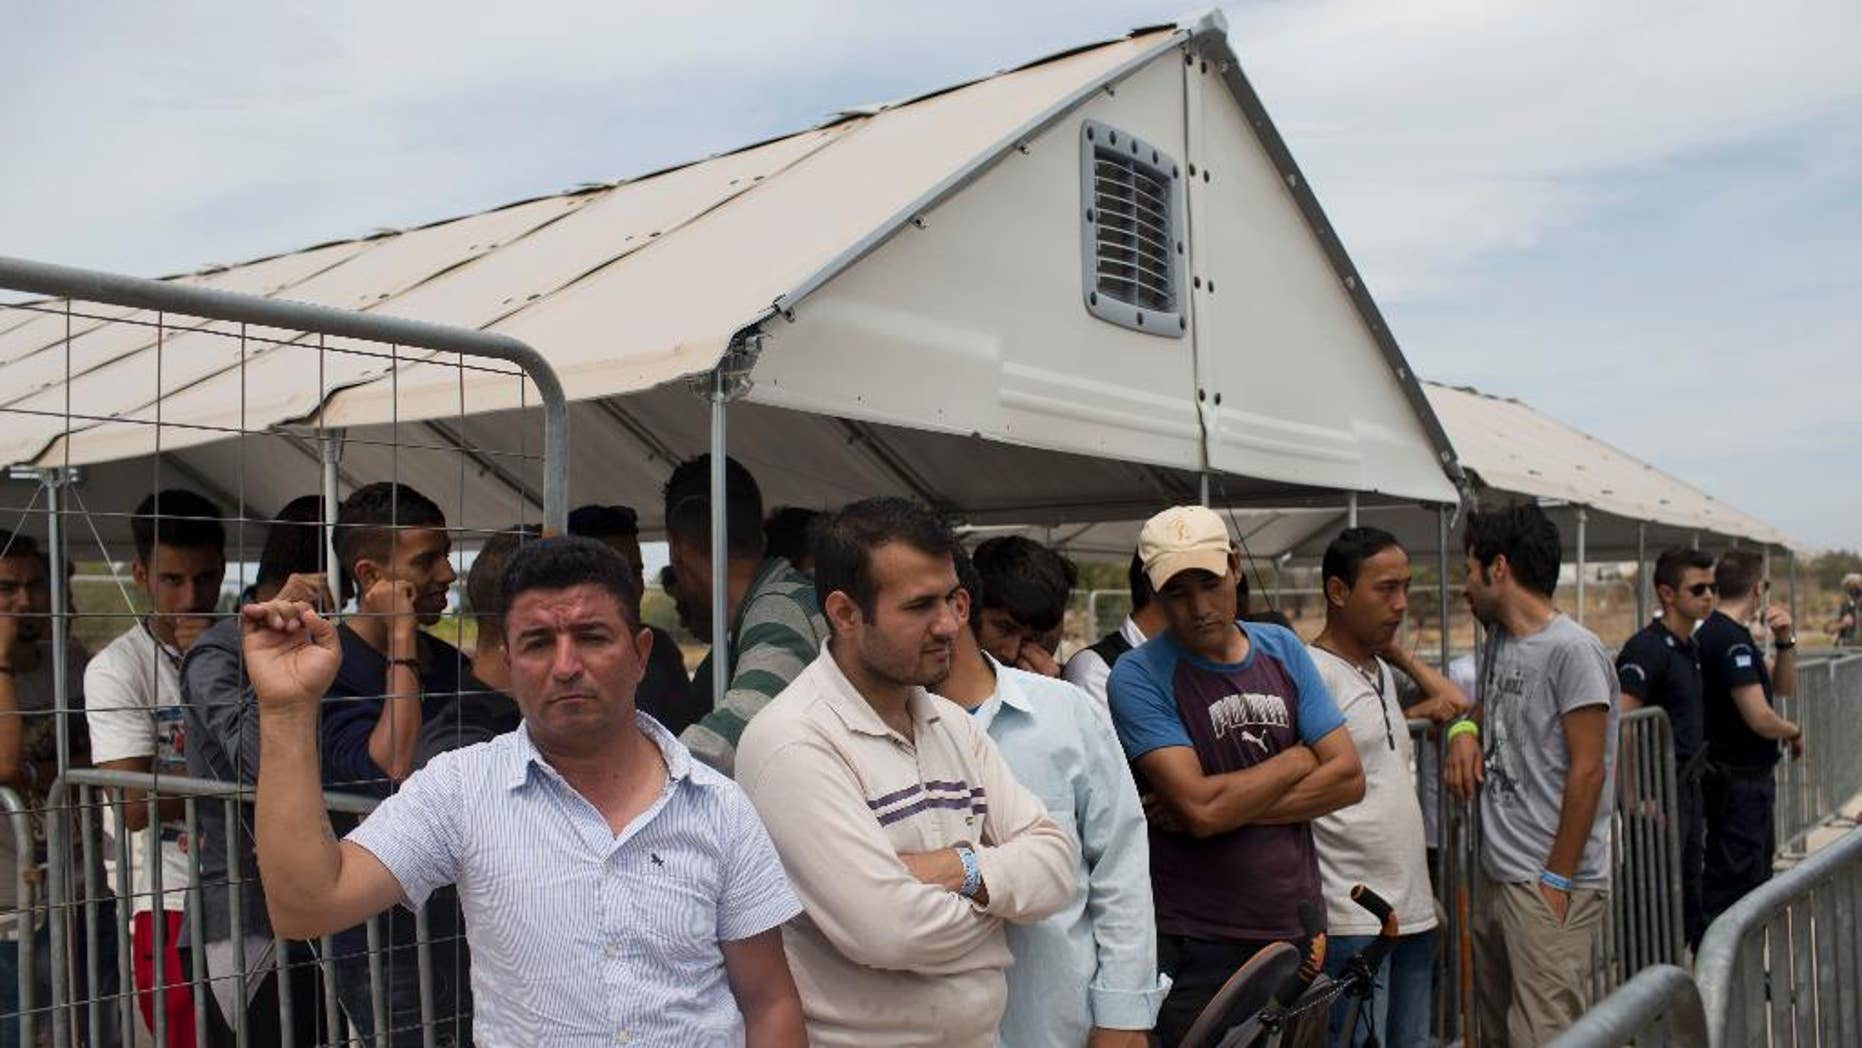 Migrants who live in the Hellenikon refugee and migrant camp of Athens wait to register for asylum on Monday, June 13, 2016. Authorities began registering applications at the site Monday, in a processes expected to last months as more than 50,000 migrants and refugees have been stranded in Greece in the wake of European border closures. (AP Photo/Petros Giannakouris)